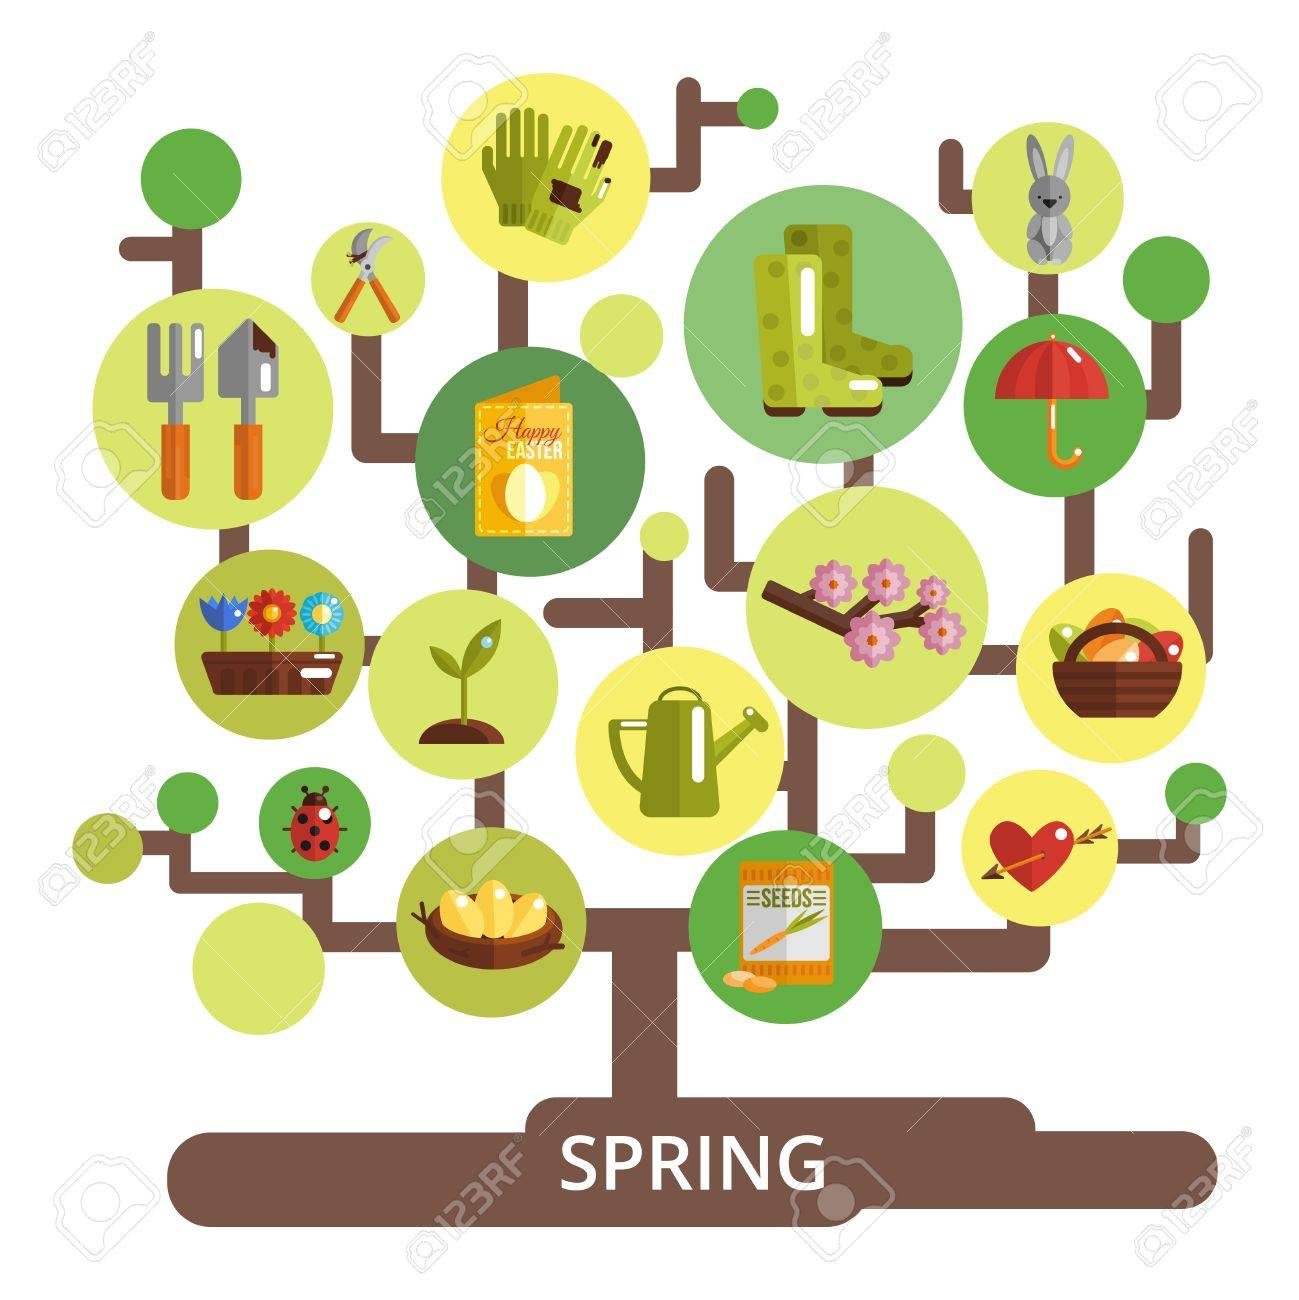 Spring season concept with decorative tree and springtime symbols spring season concept with decorative tree and springtime symbols vector illustration stock vector 35957507 biocorpaavc